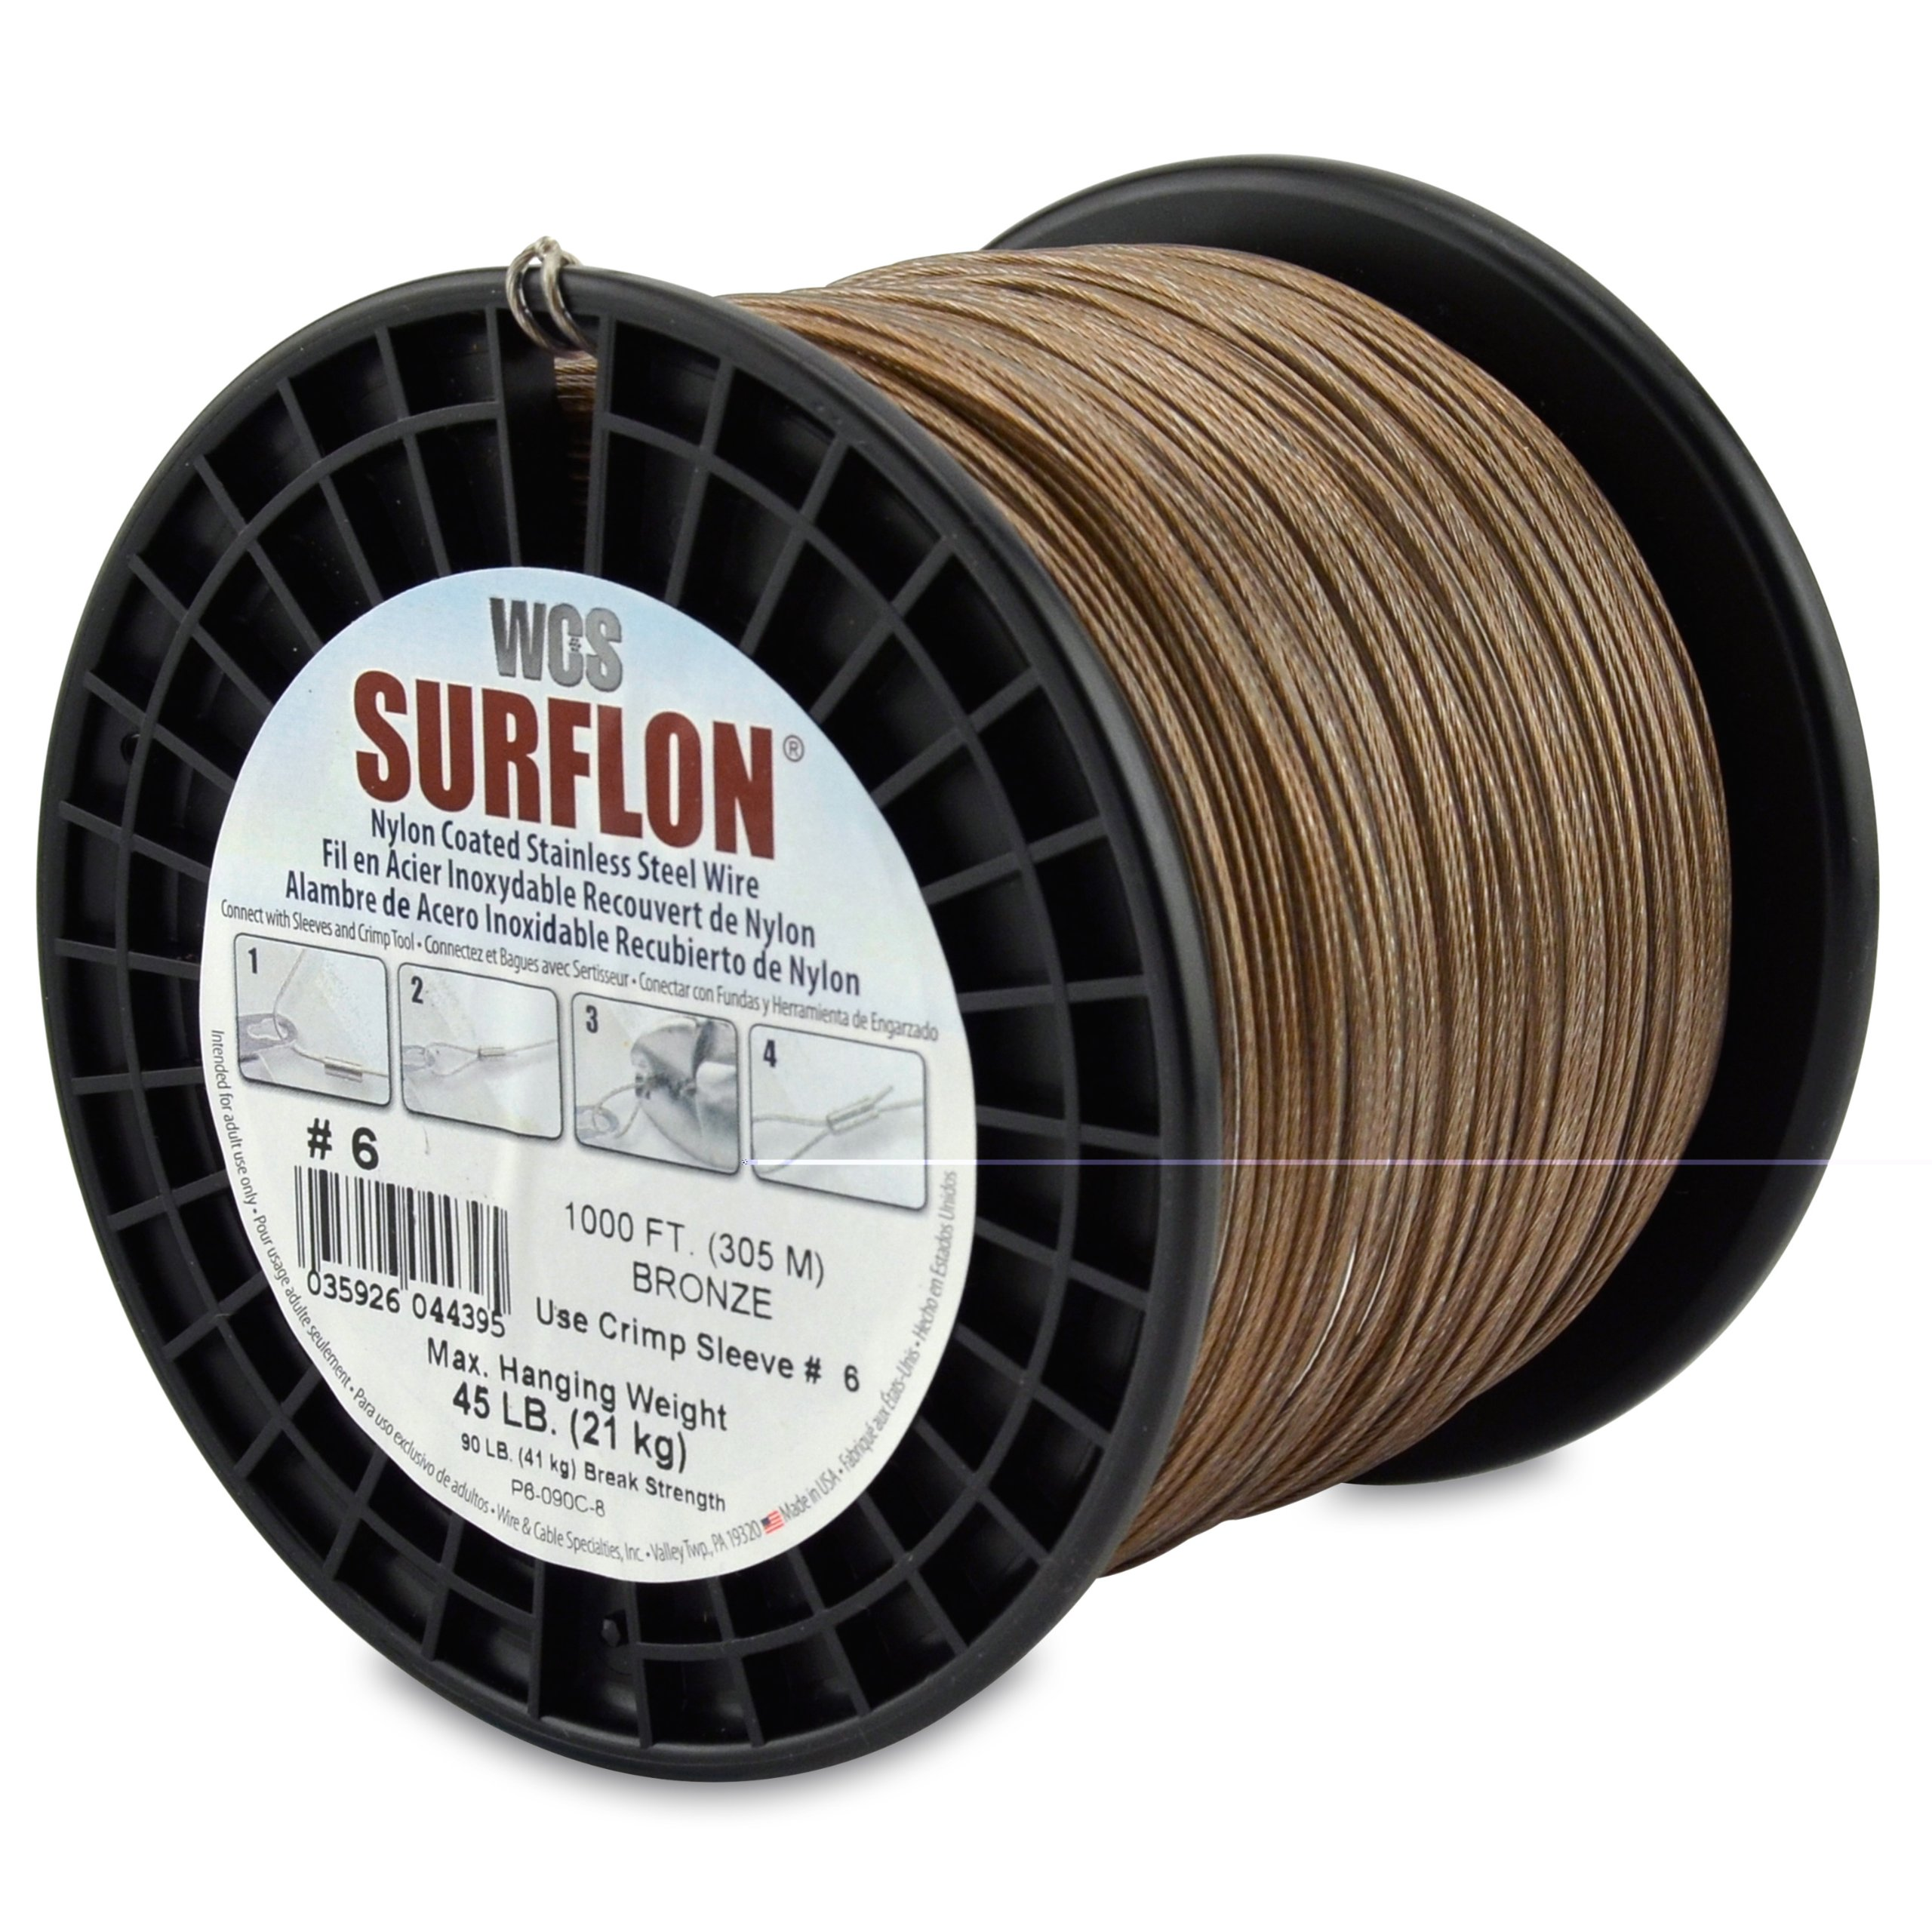 Surflon Size 6-45-Pound Break 1000-Feet Crimping Picture Wire Nylon Coated Stainless Steel, Bronze by Wire & Cable Specialties